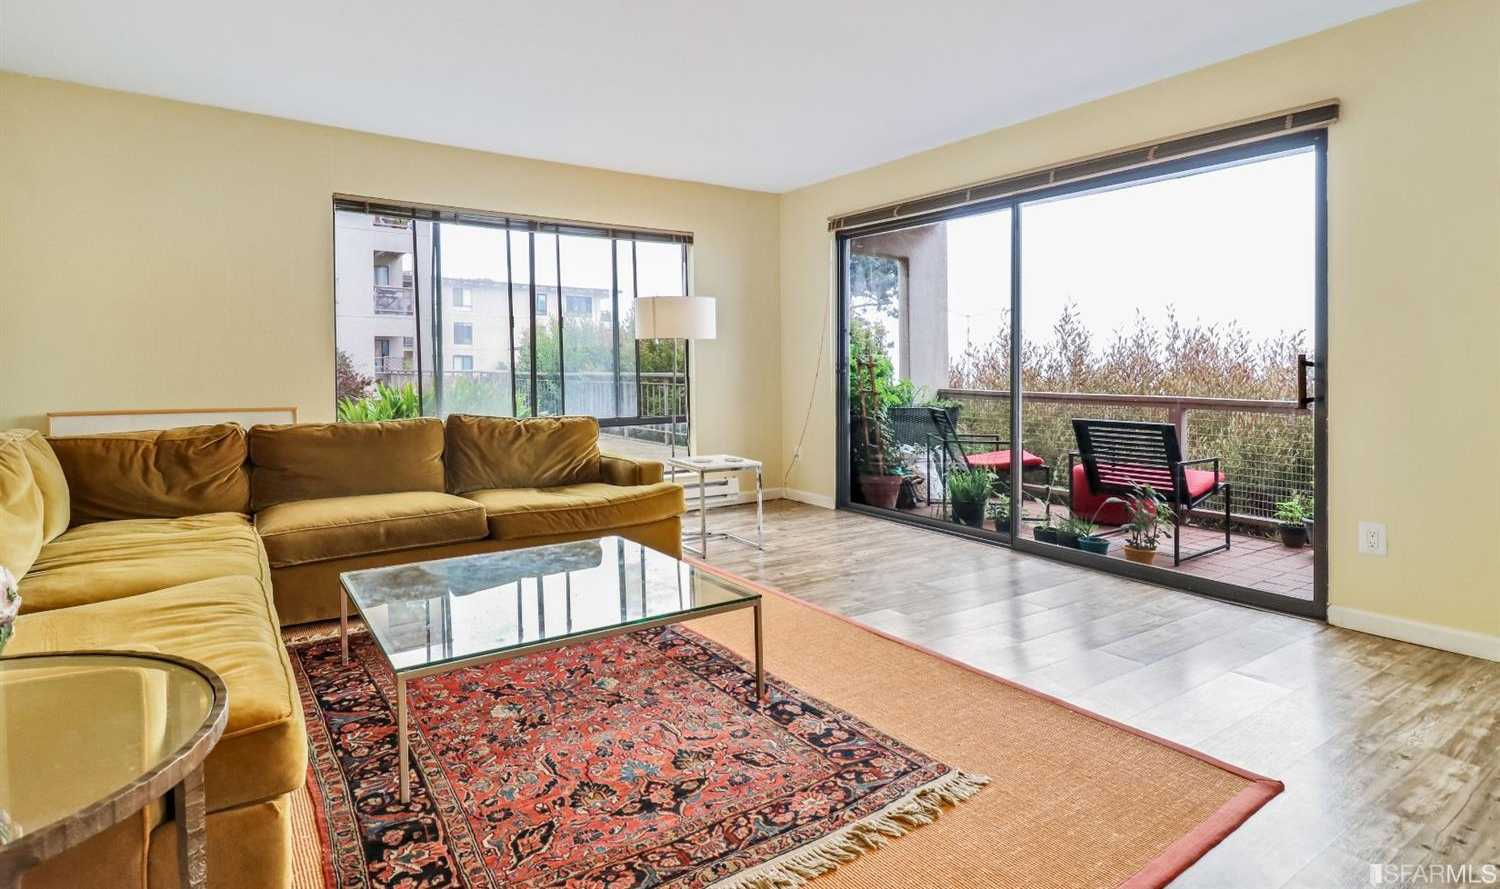 $575,000 - 1Br/1Ba -  for Sale in Emeryville